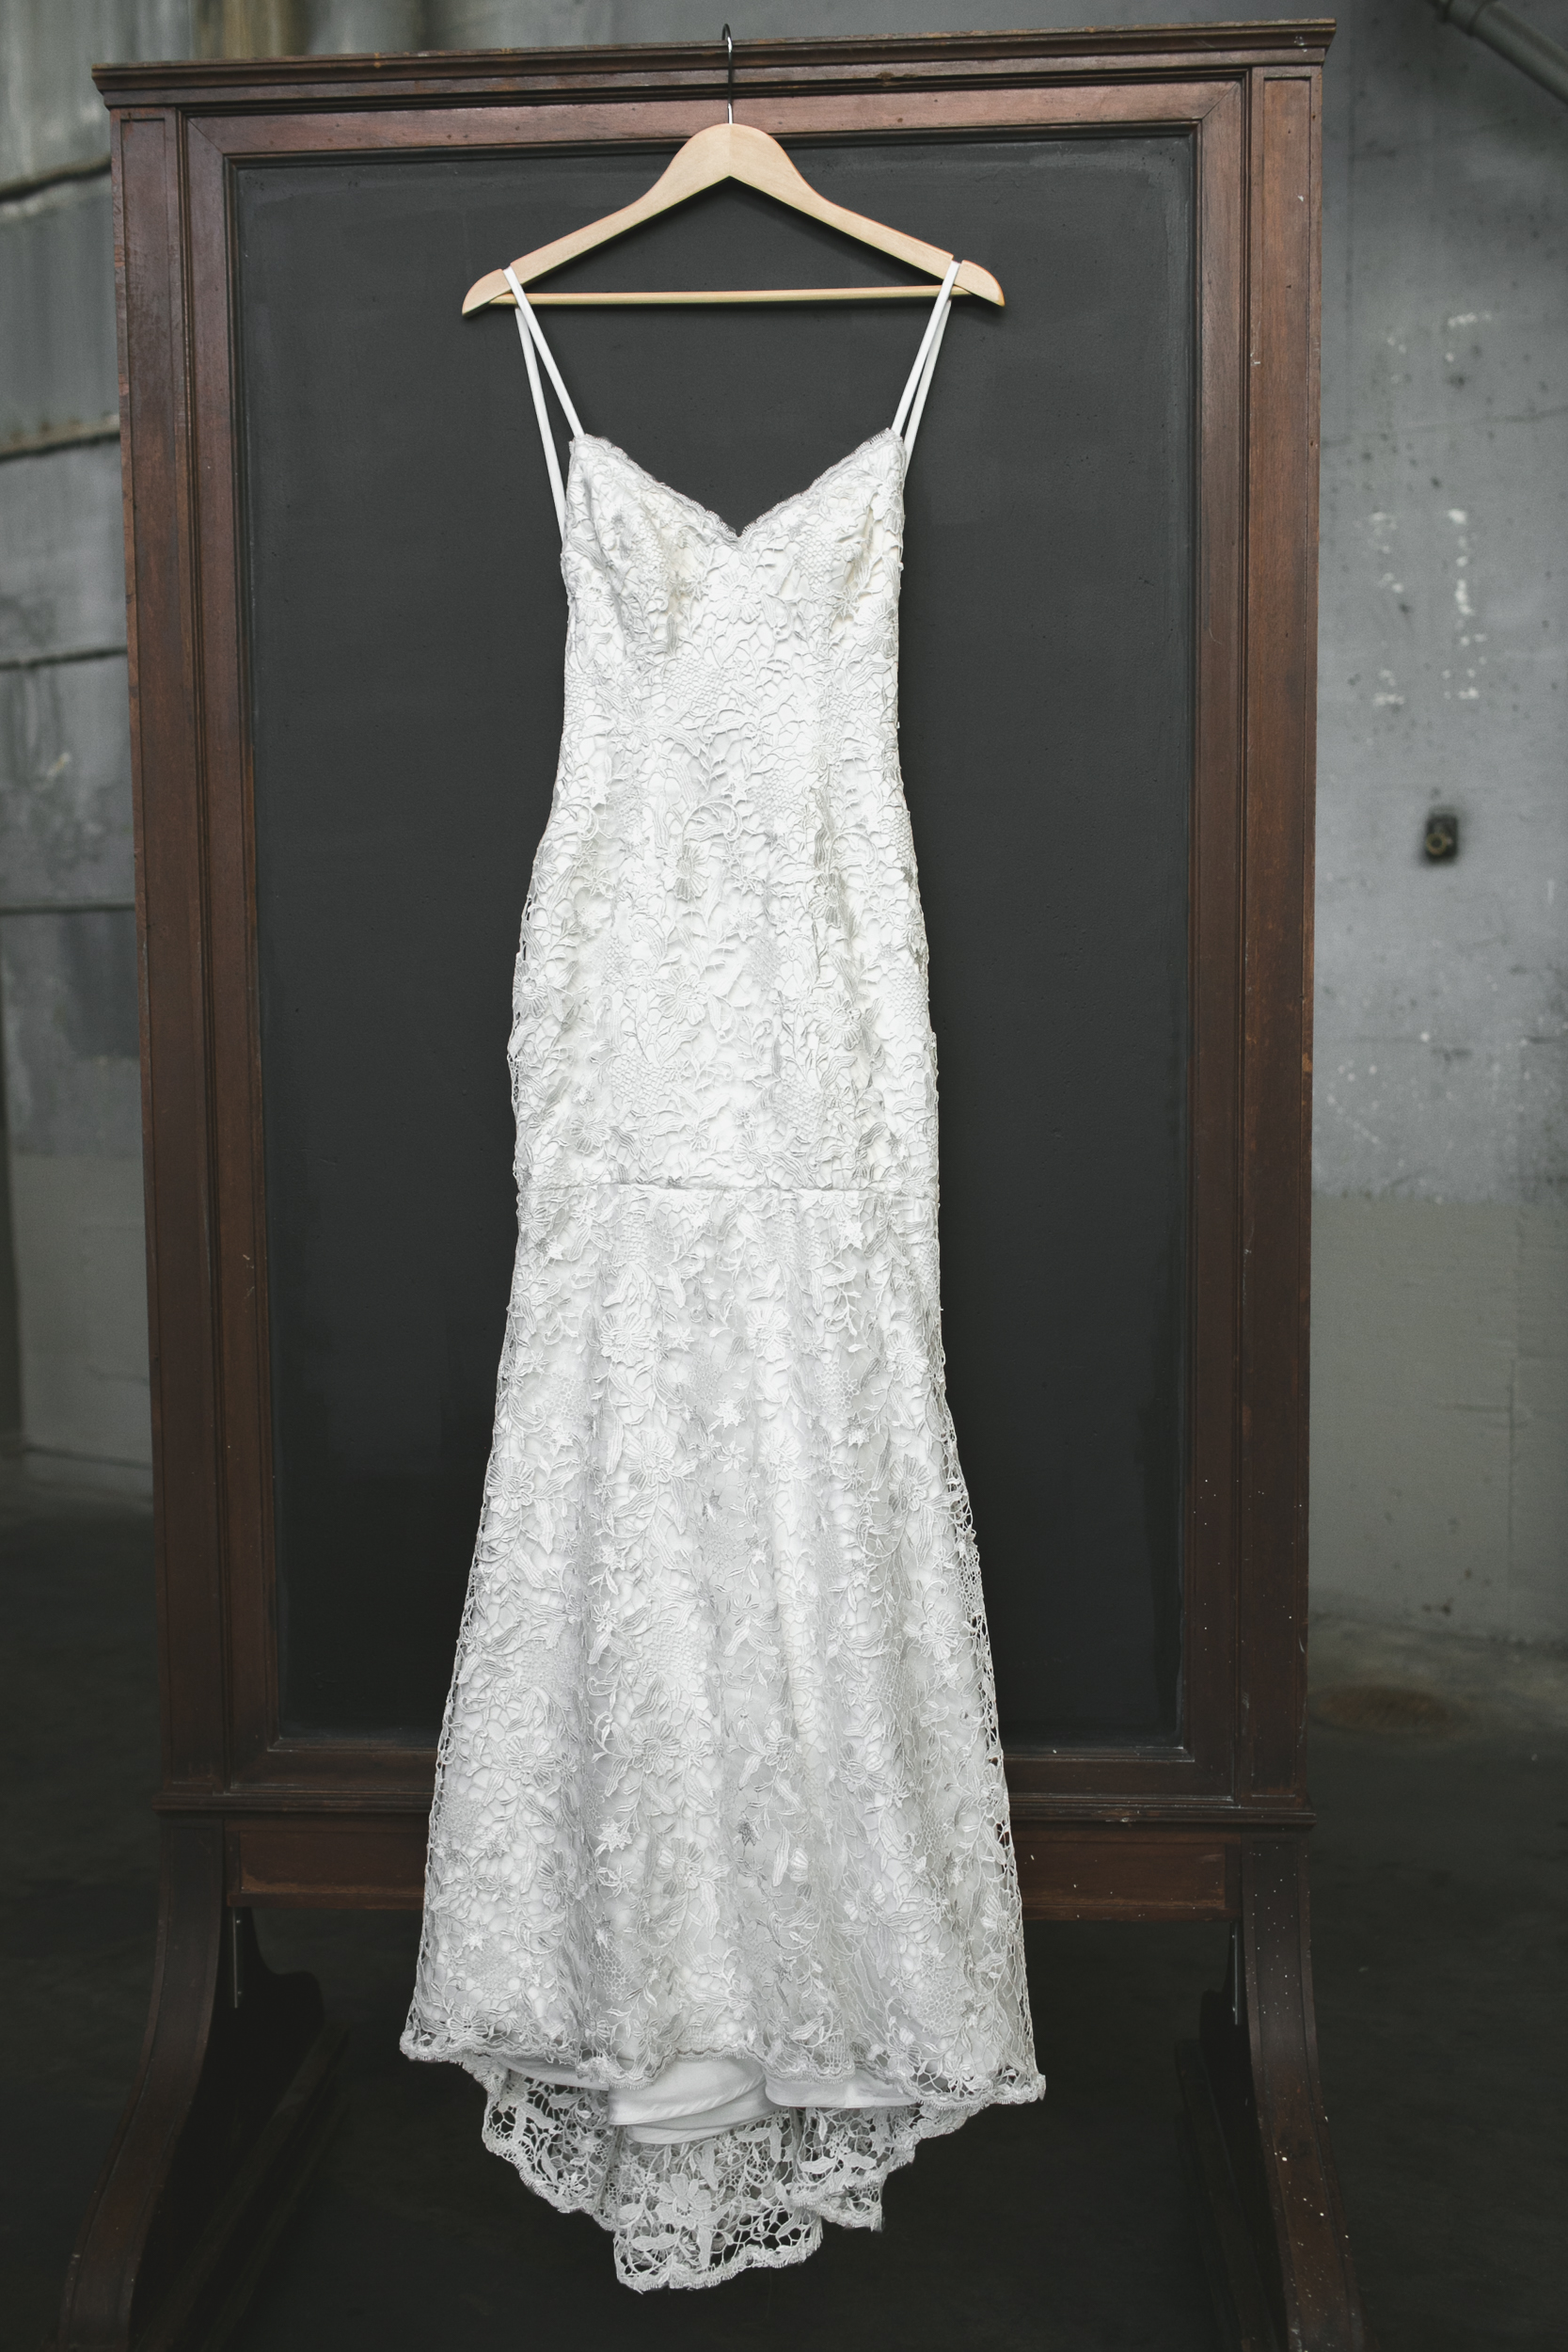 full length photograph of the brides dress hanging